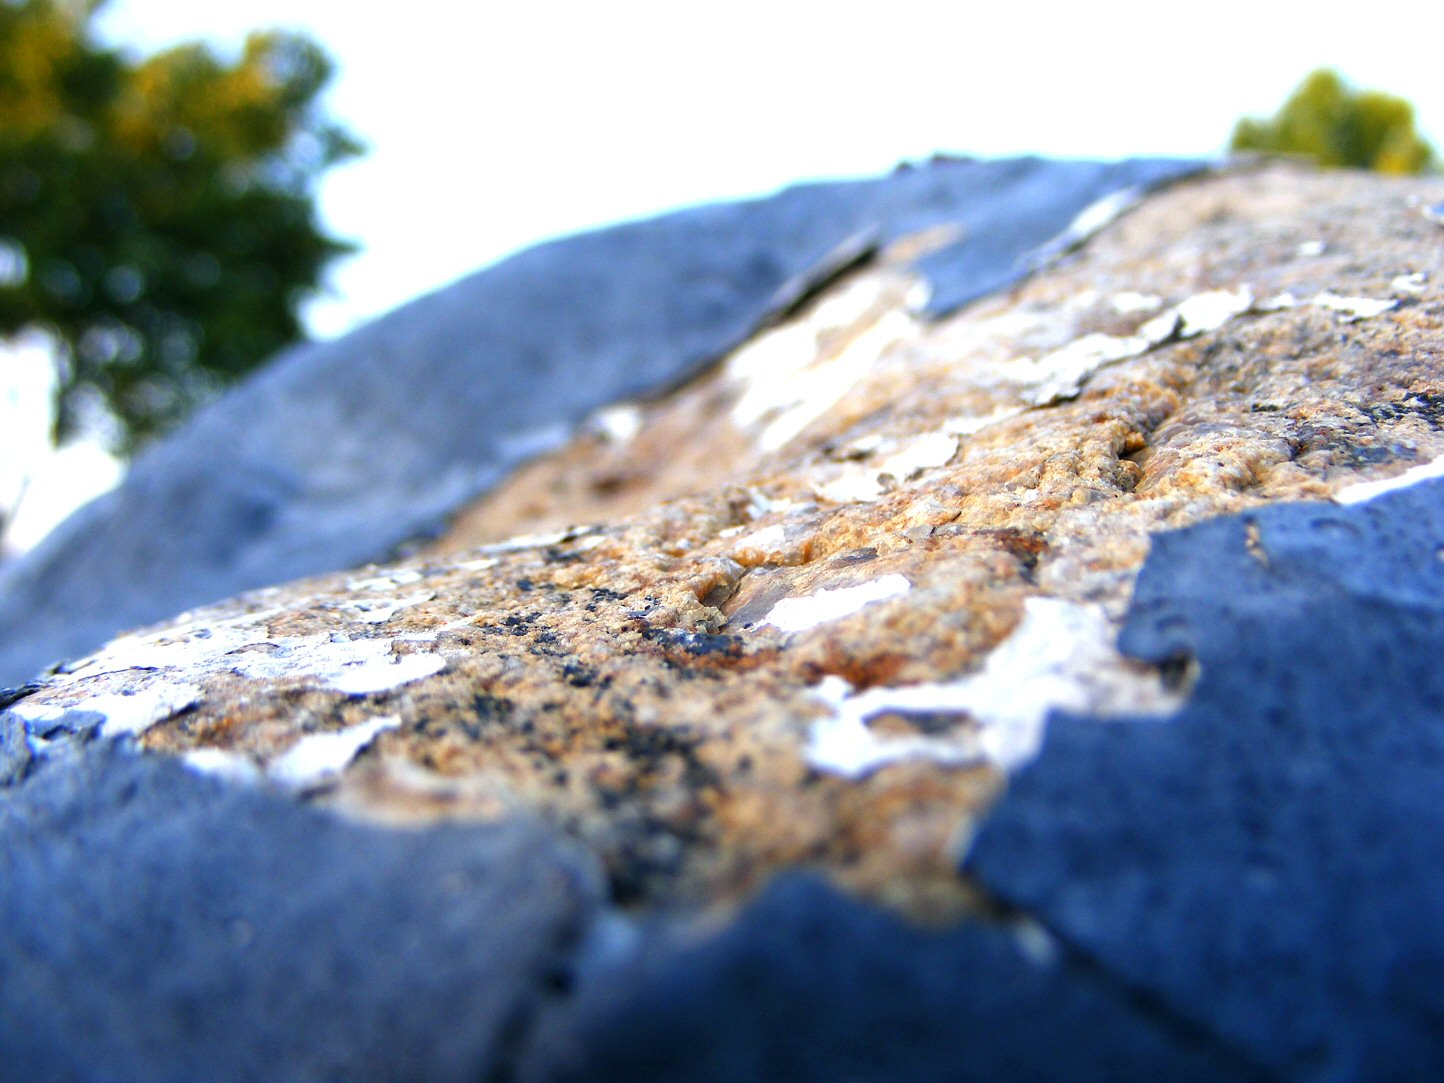 Macro Blue Chipped Rock and Paint